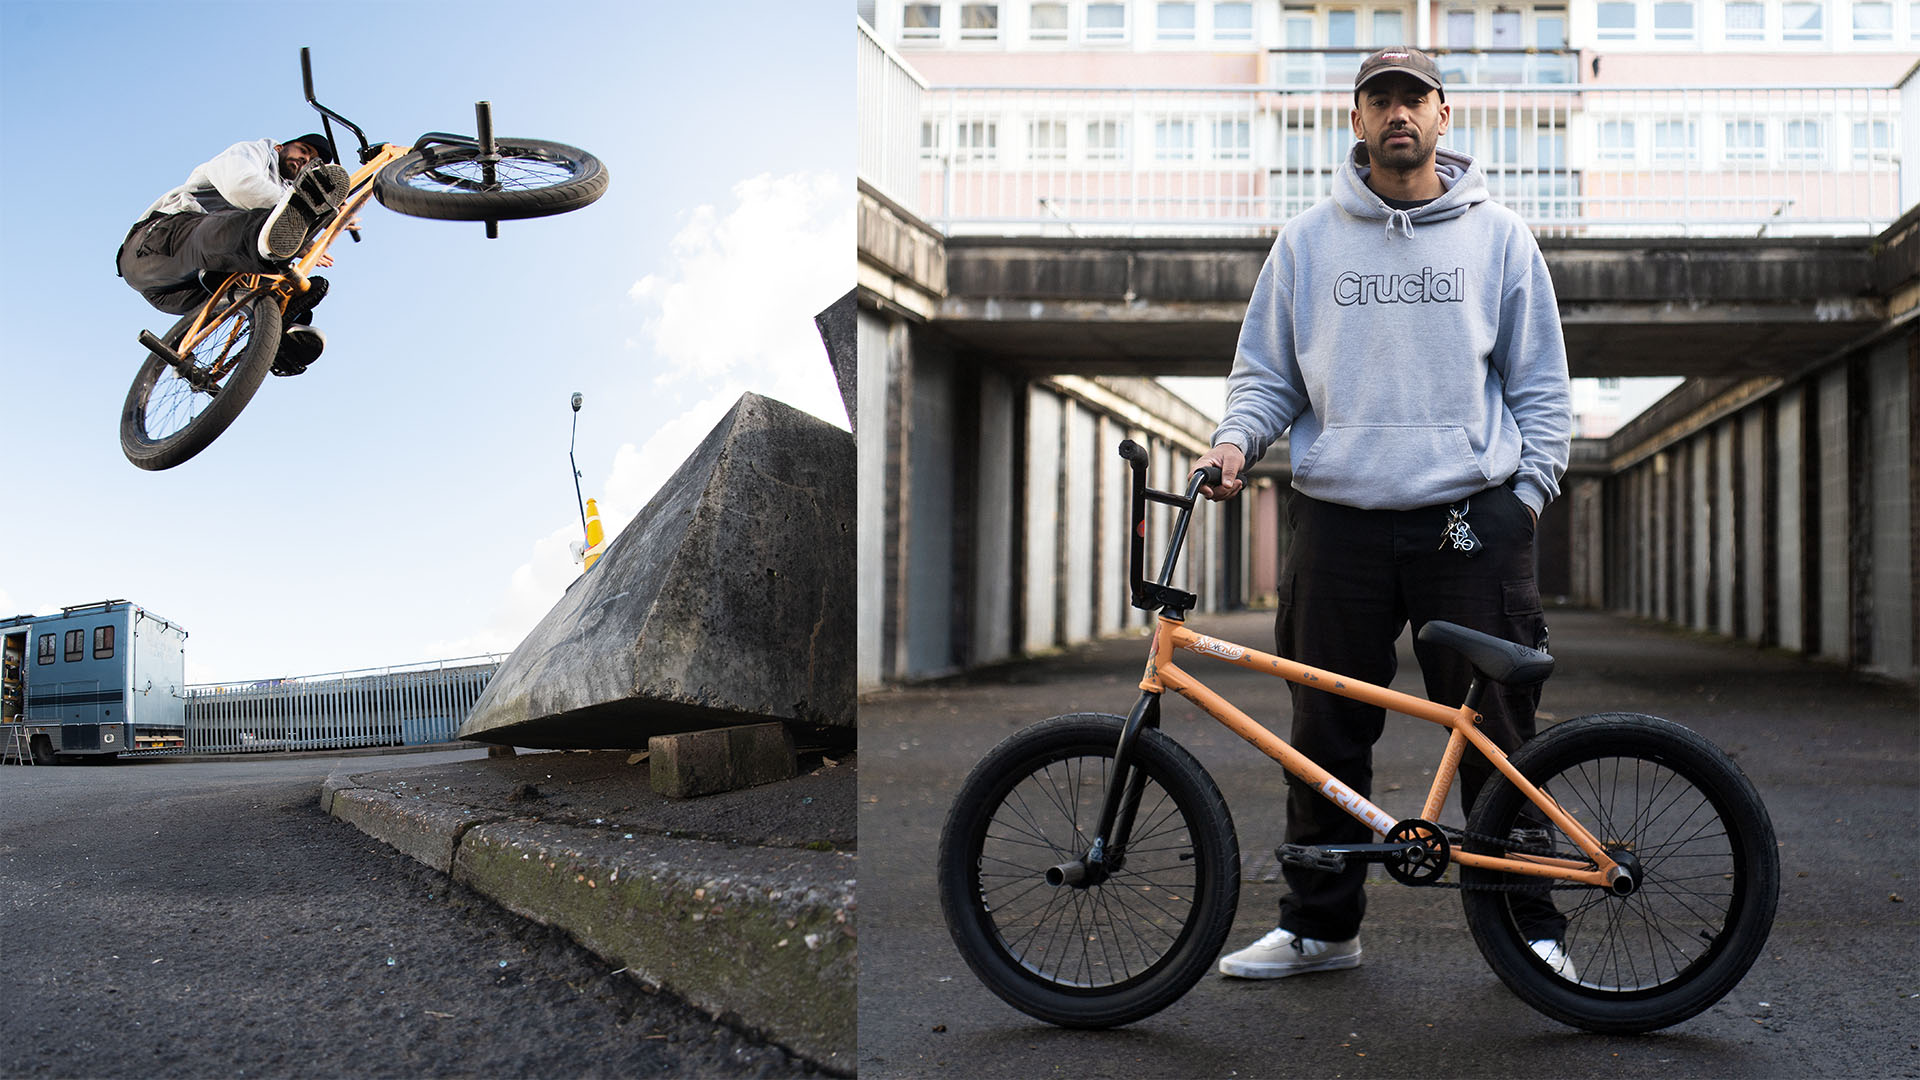 BIKE CHECK: Mike Suttle